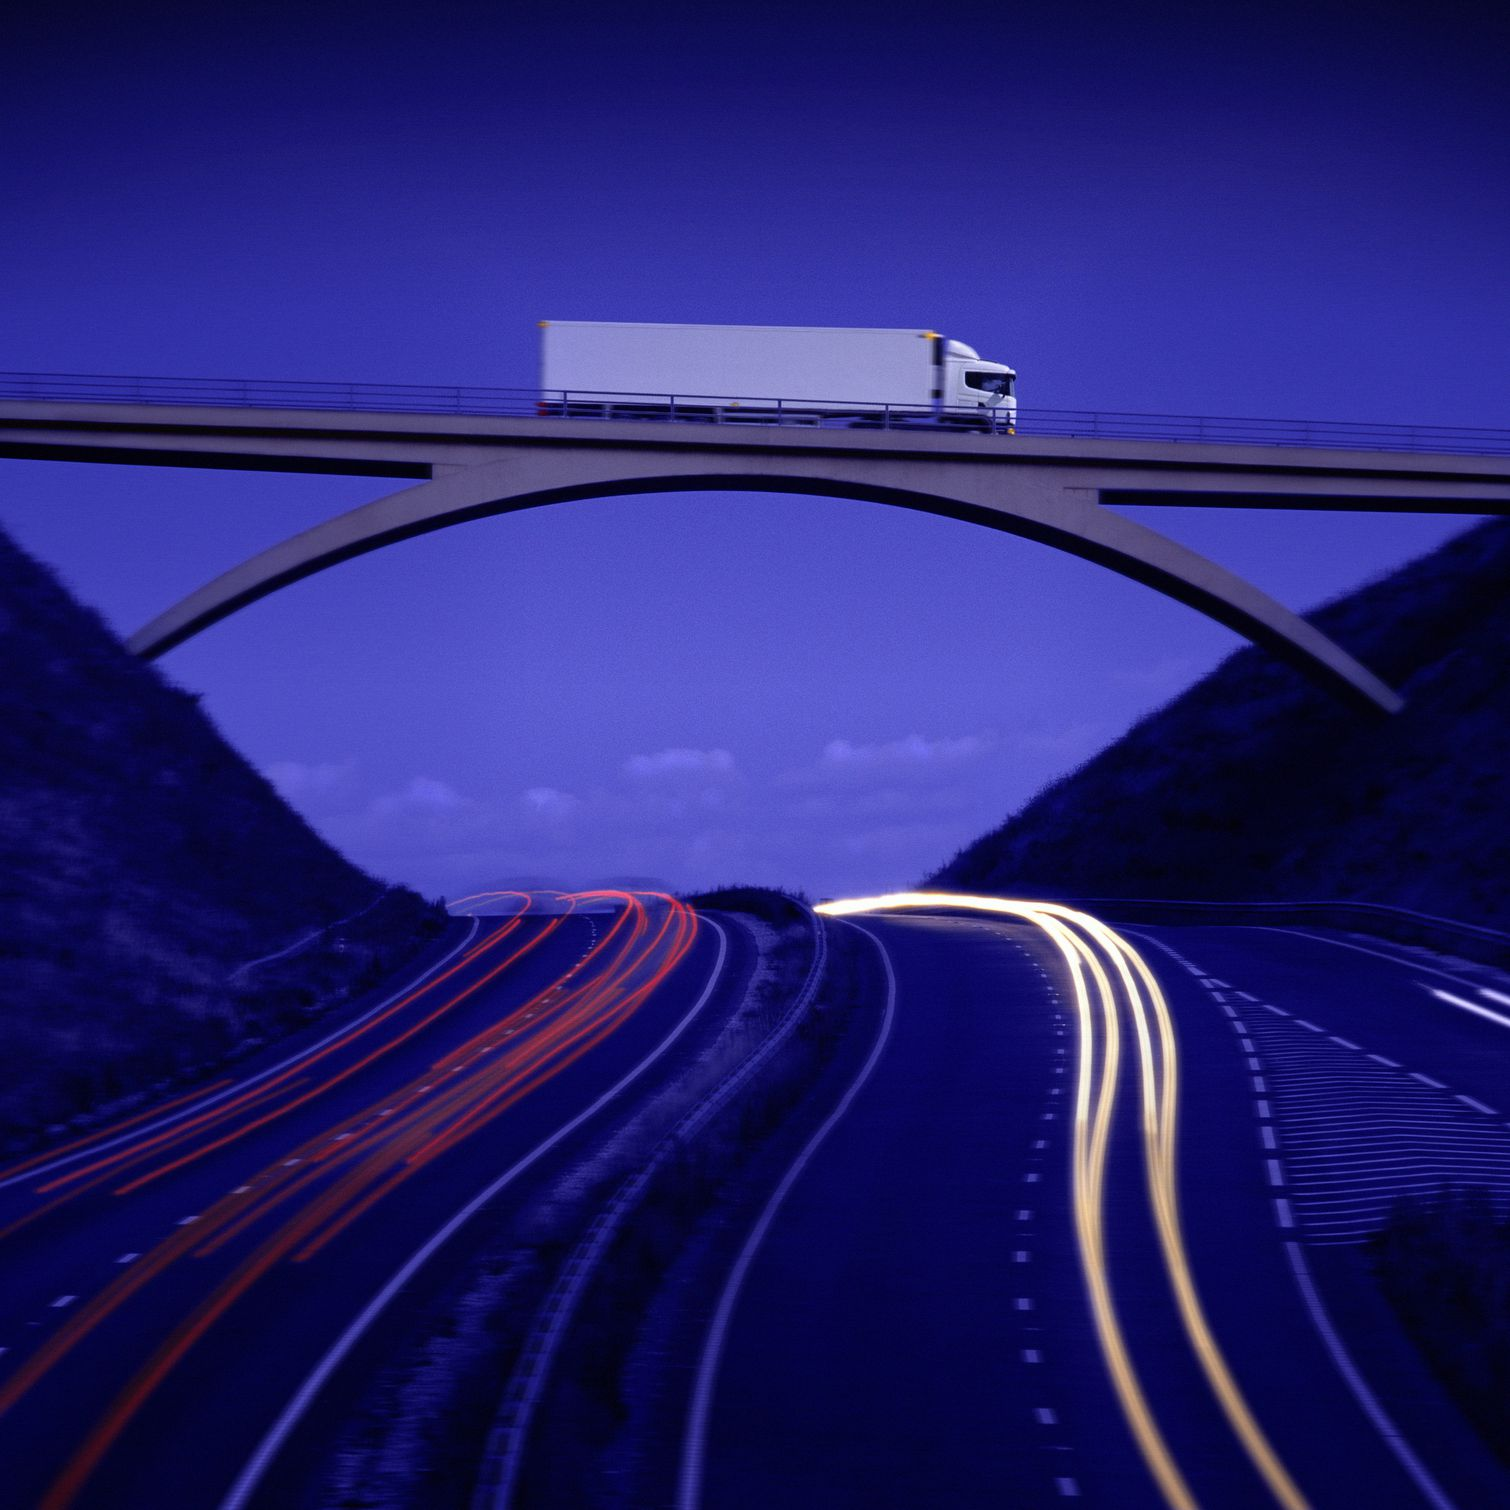 Speed Limits for Commercial Vehicles By State